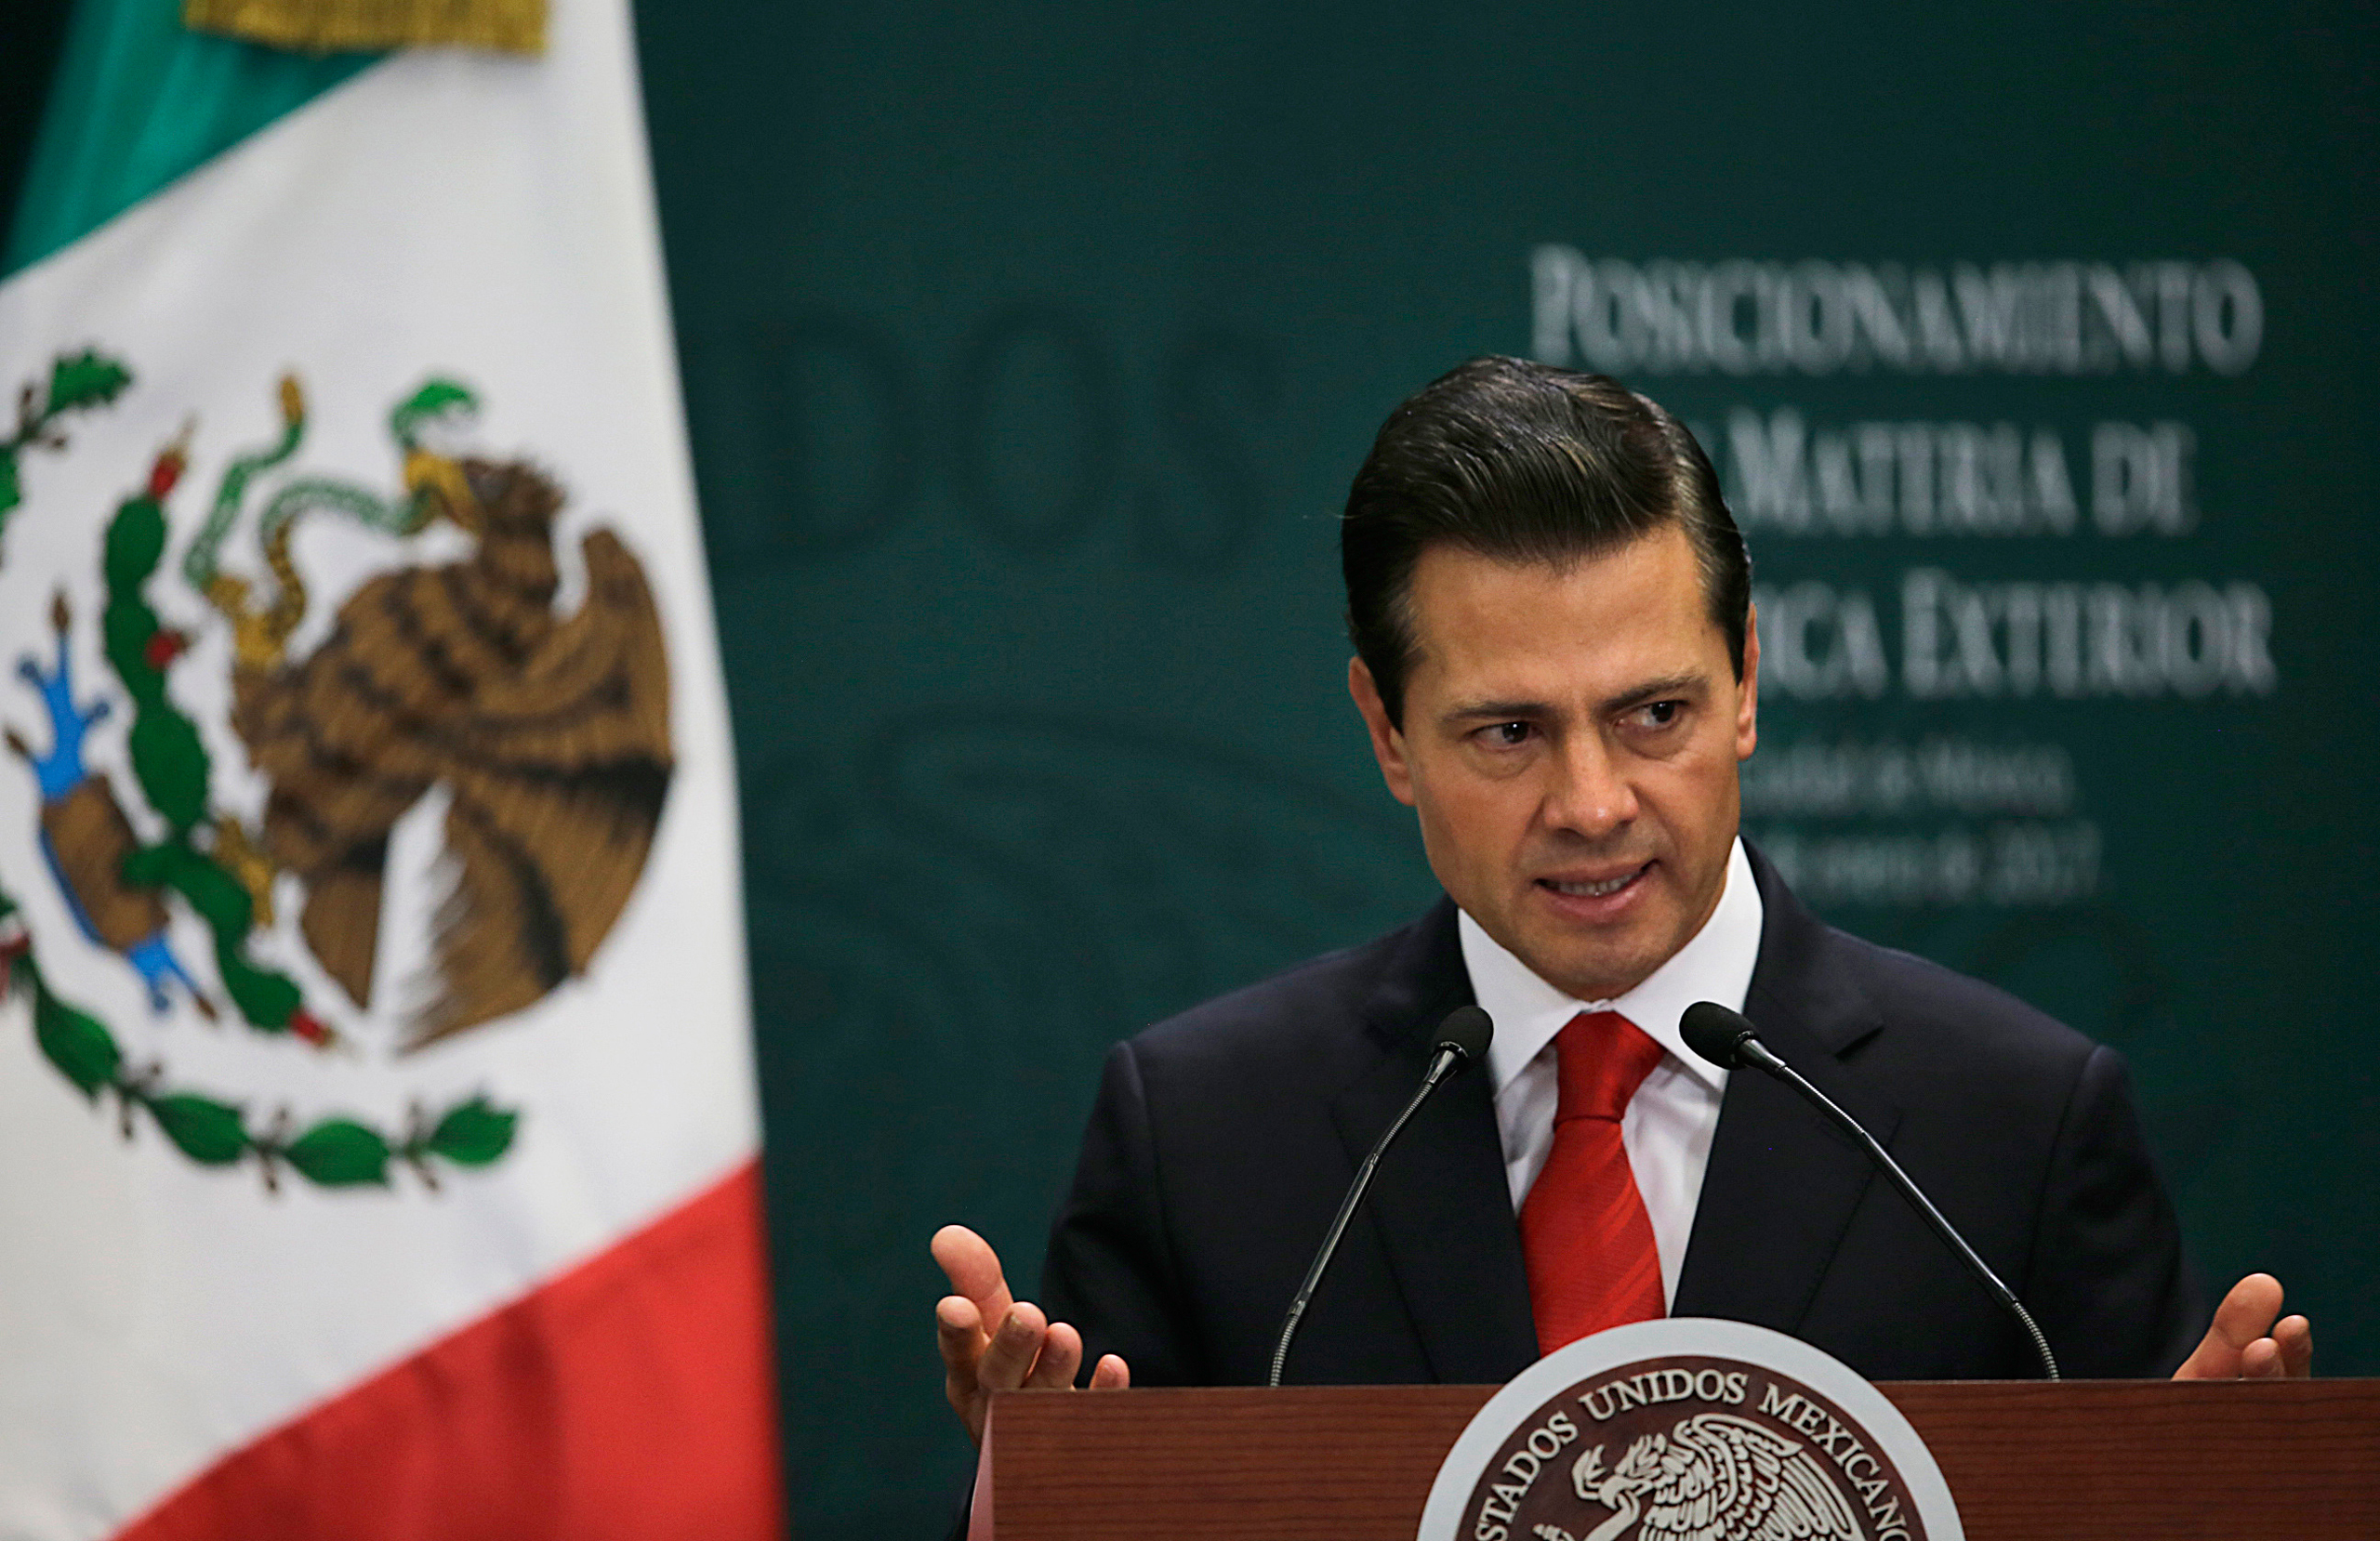 Mexico's President Enrique Pena Nieto speaks during a press conference at Los Pinos presidential residence in Mexico City on Jan. 23, 2017.